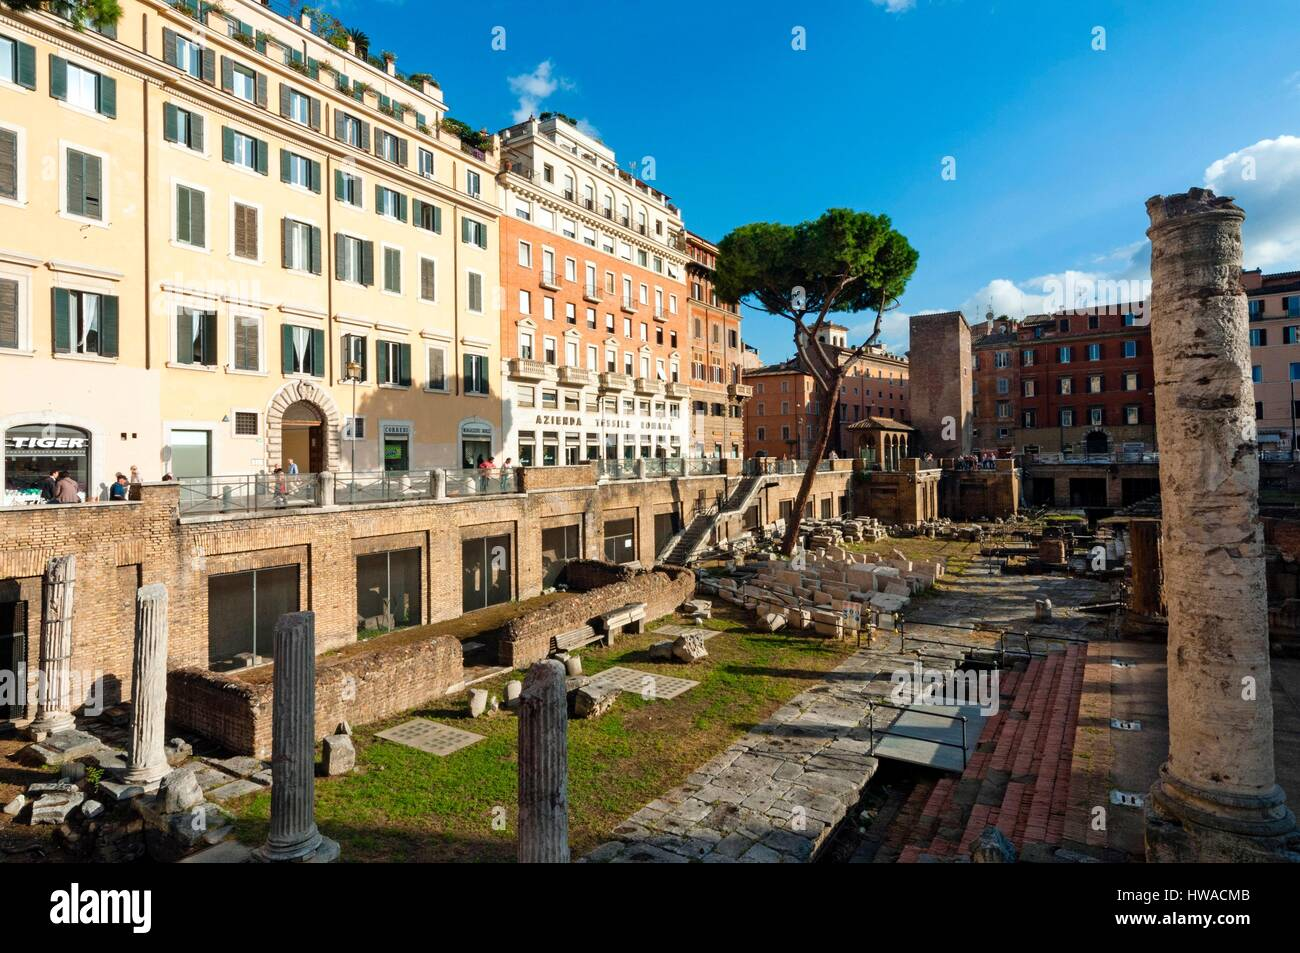 Italy, Latium, Rome, historical centre listed as World Heritage by UNESCO, Ruins of Roman temples at Area Sacra, - Stock Image